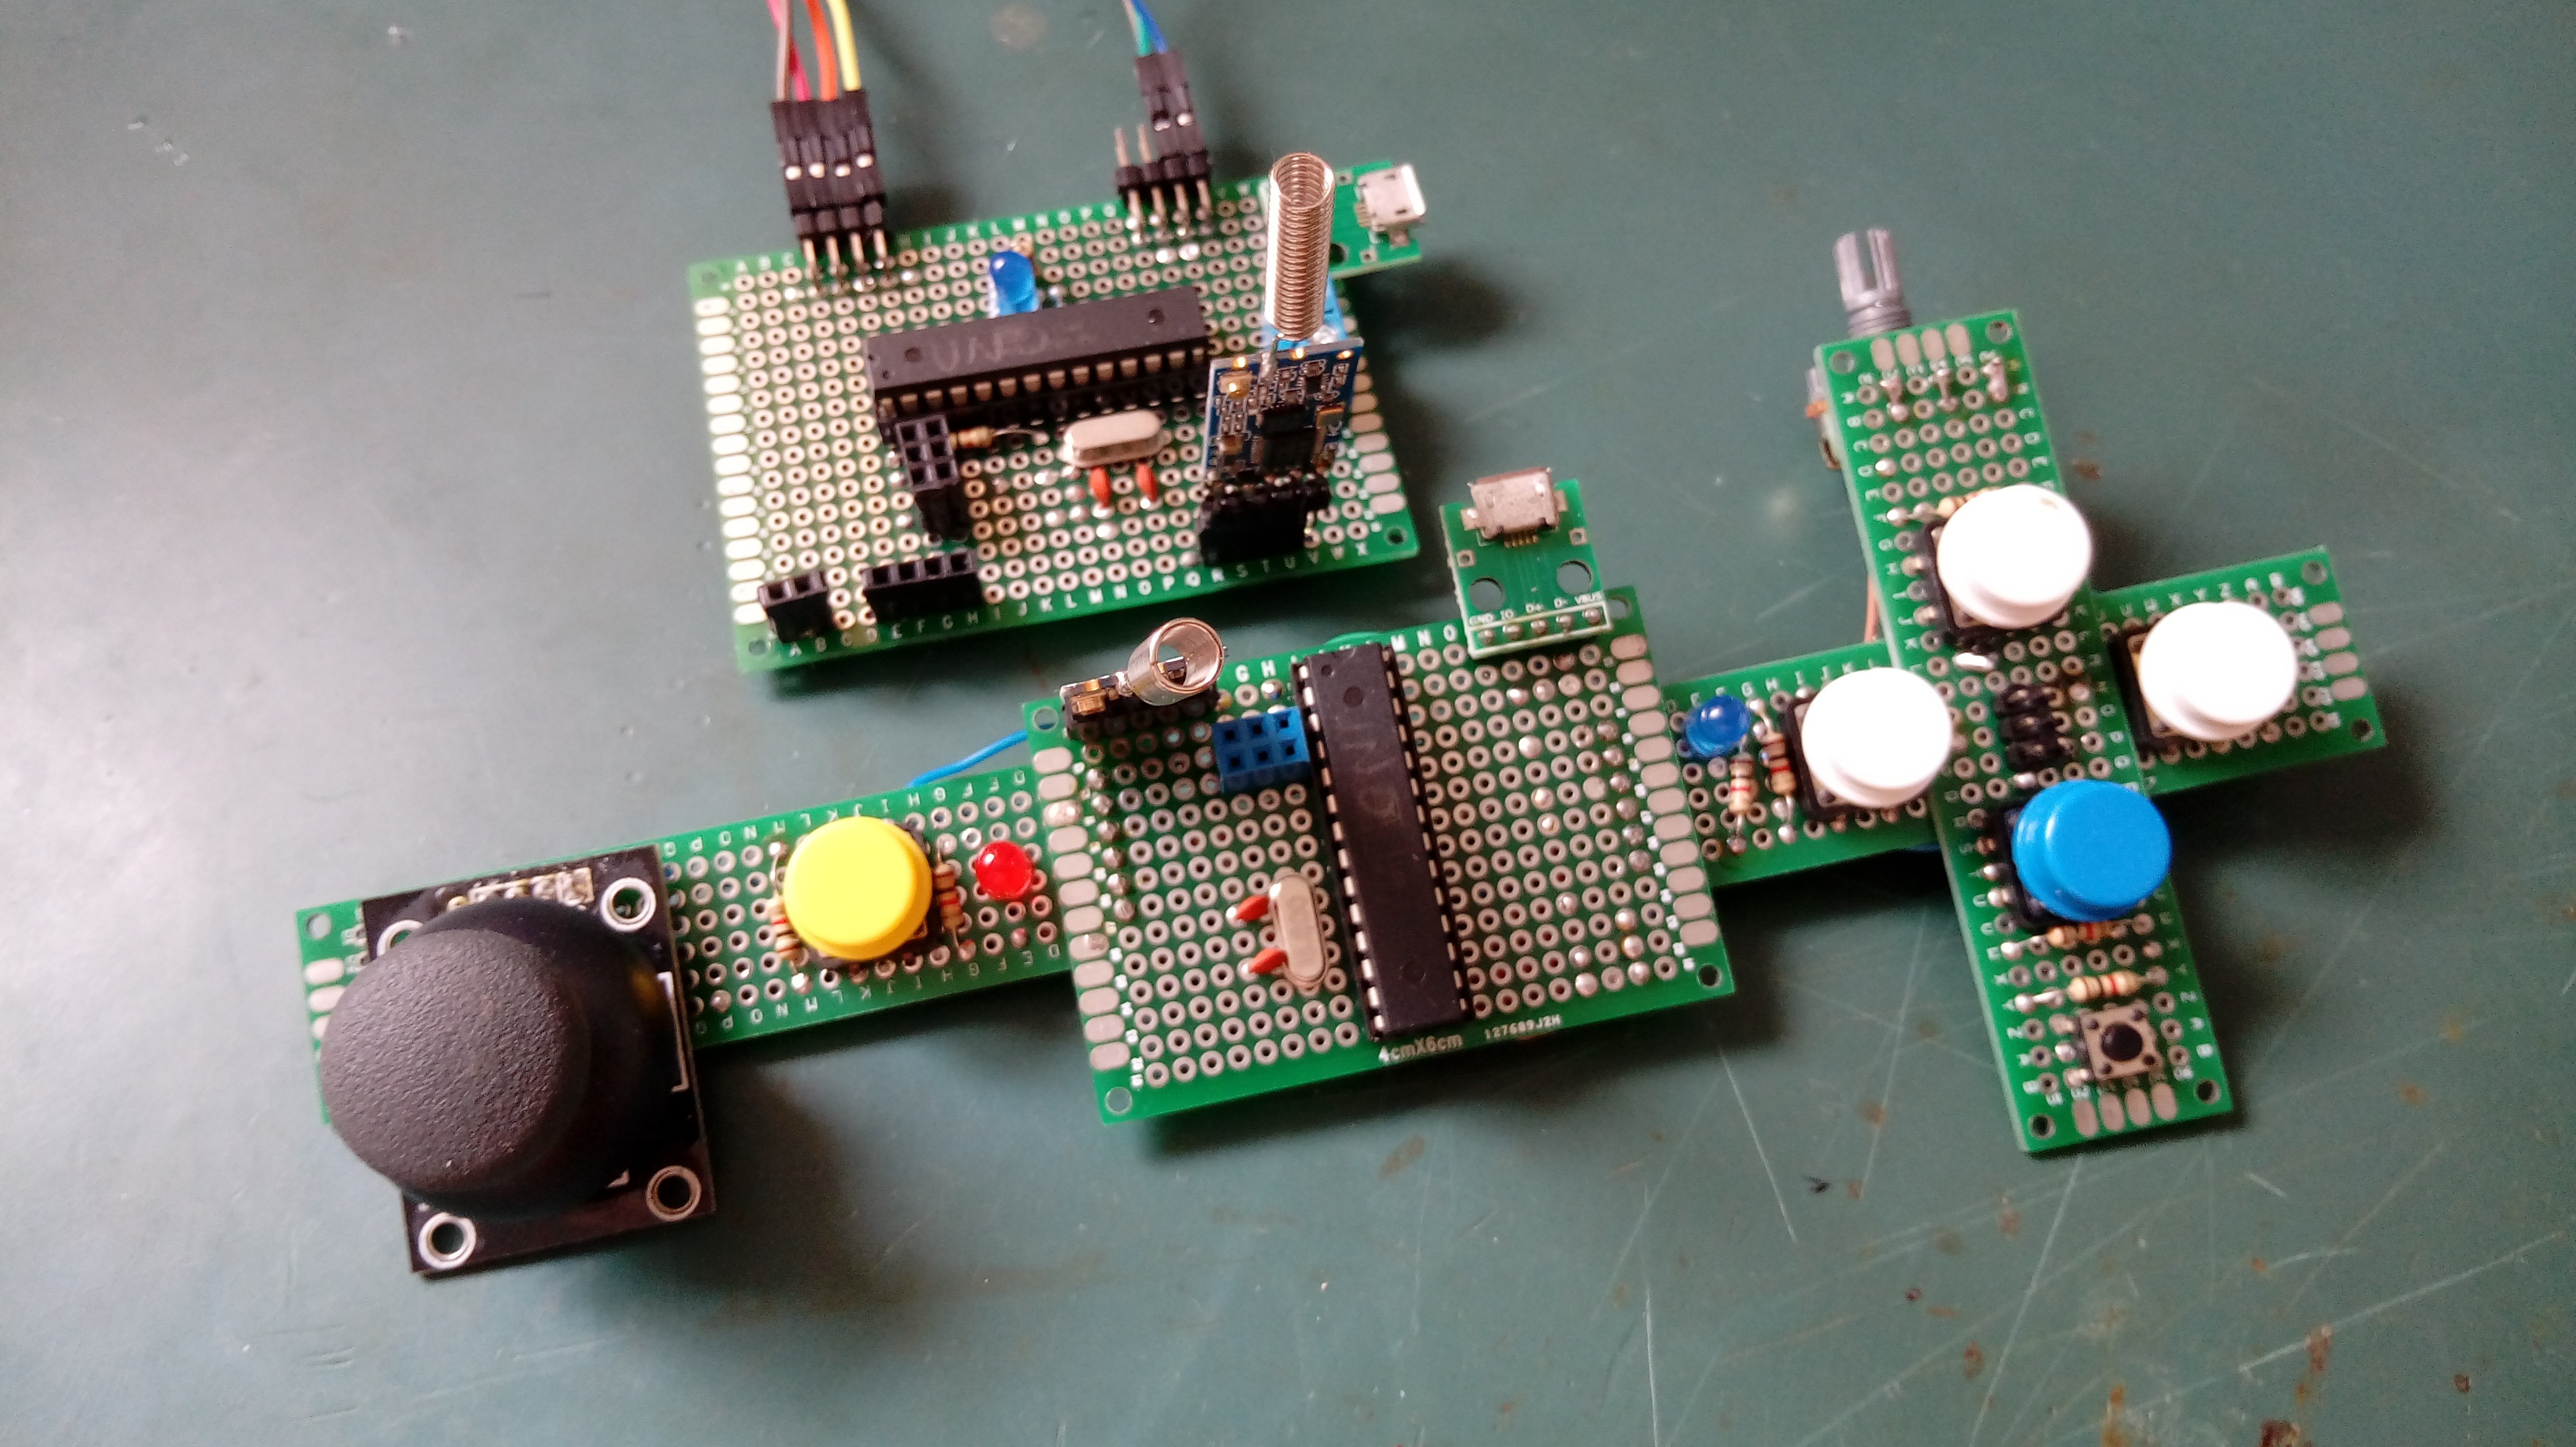 Diy Remote Controller For Rc Vehicles Electronics Project How To Make A Control Car Just Have Feeling Of The Size And Look Feel It Pictures Are Below Both Emitter Radio Receiver Motor